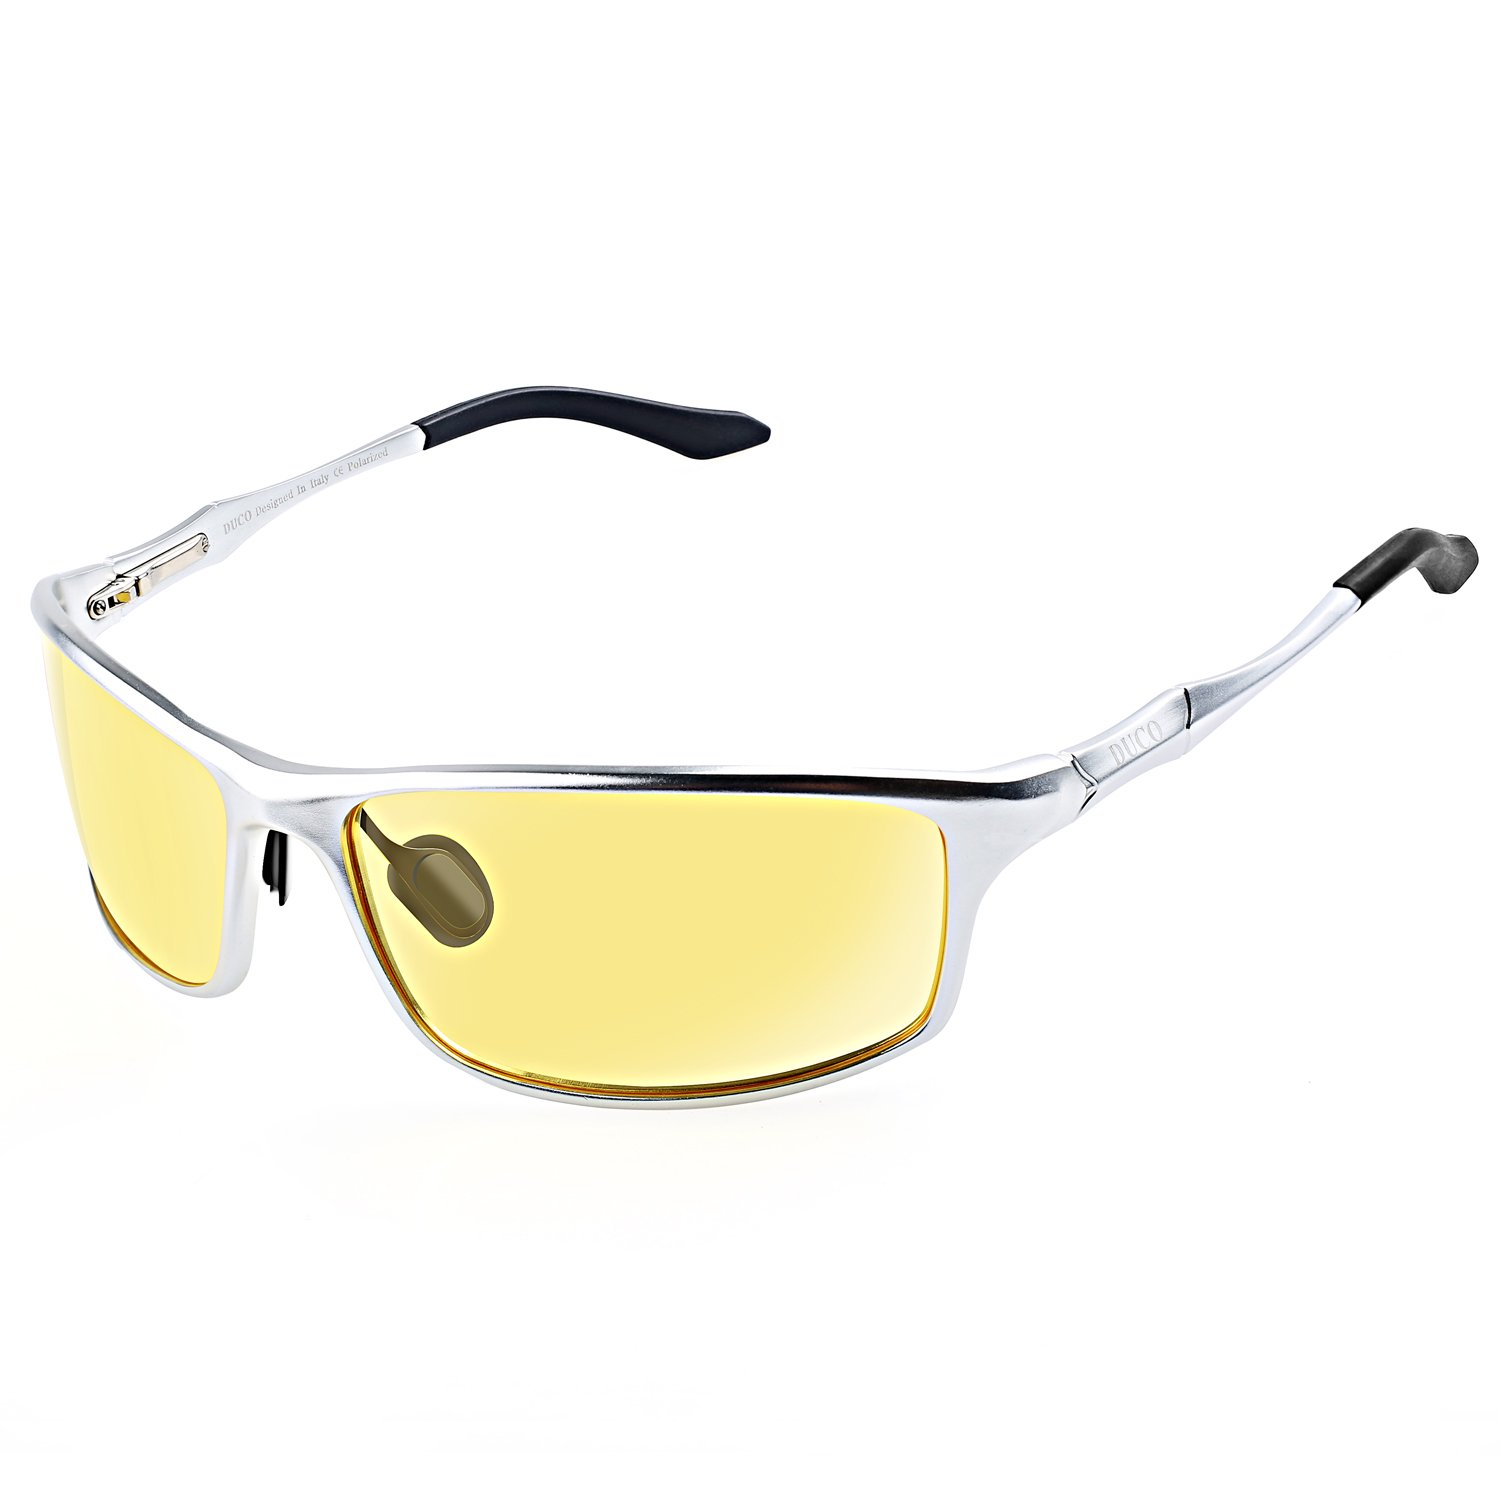 Duco Night vision Driving Glasses for Headlight Driver Glasses 8201 (Silver Frame Yellow Lens)